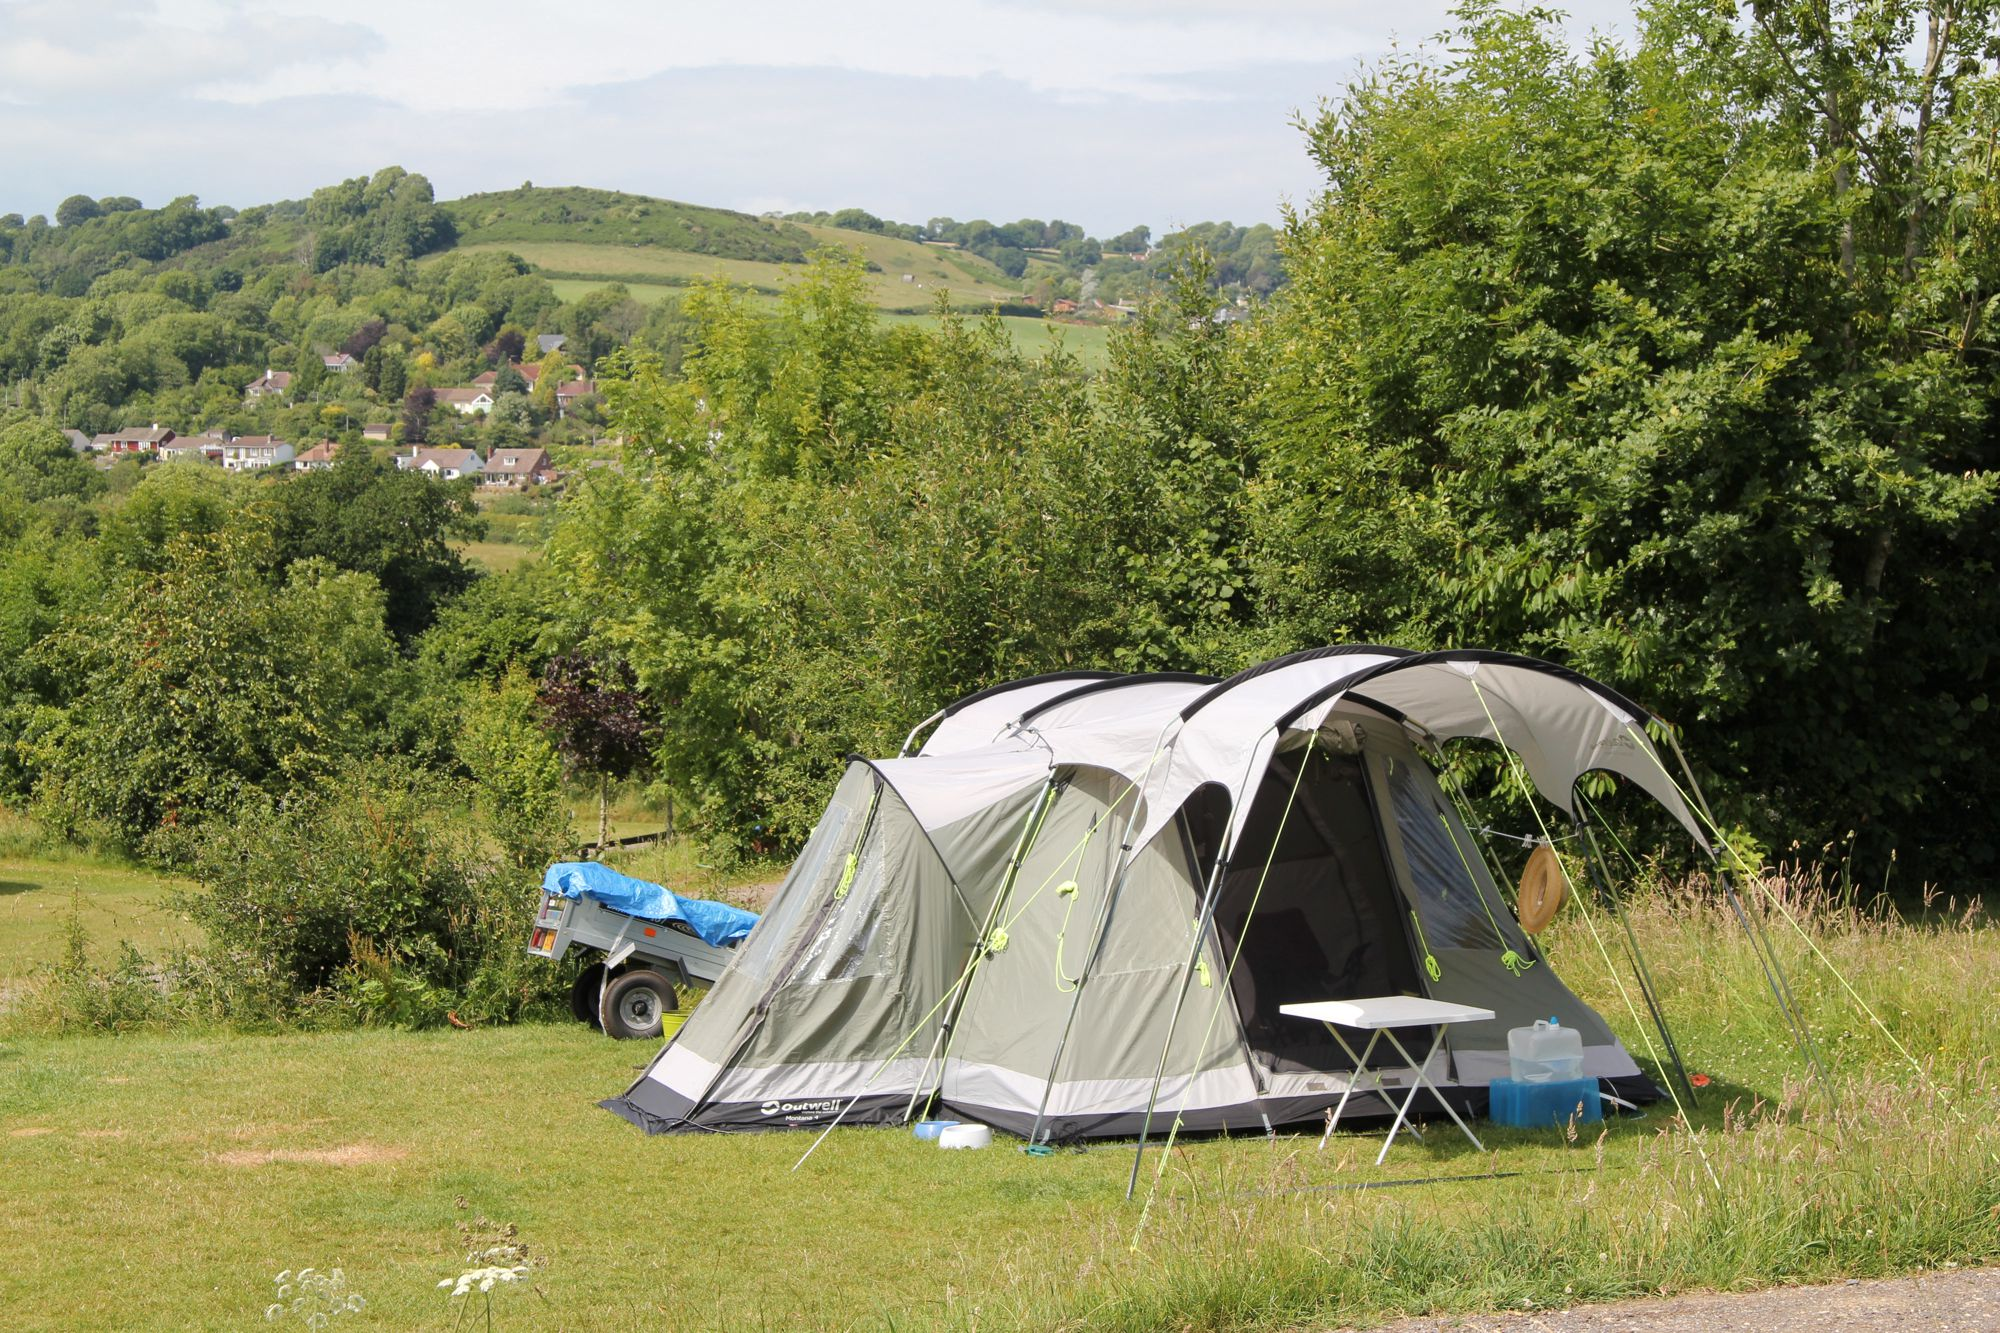 Campsites in Sidmouth & Seaton – I Love This Campsite